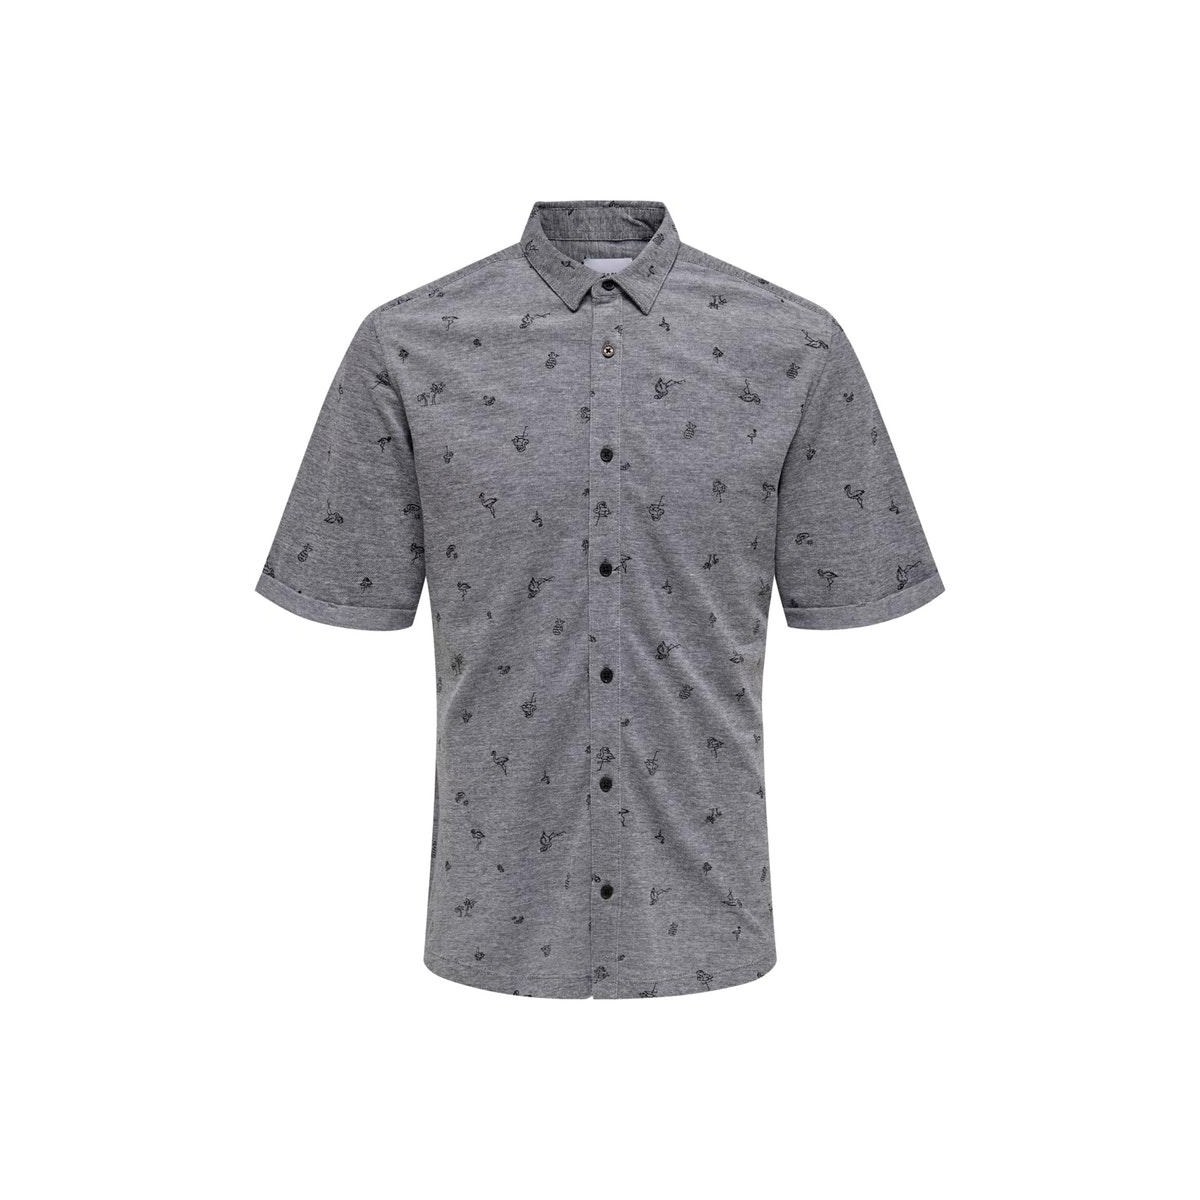 onscuton ss knitted pique aop shirt 22013293 only & sons overhemd black